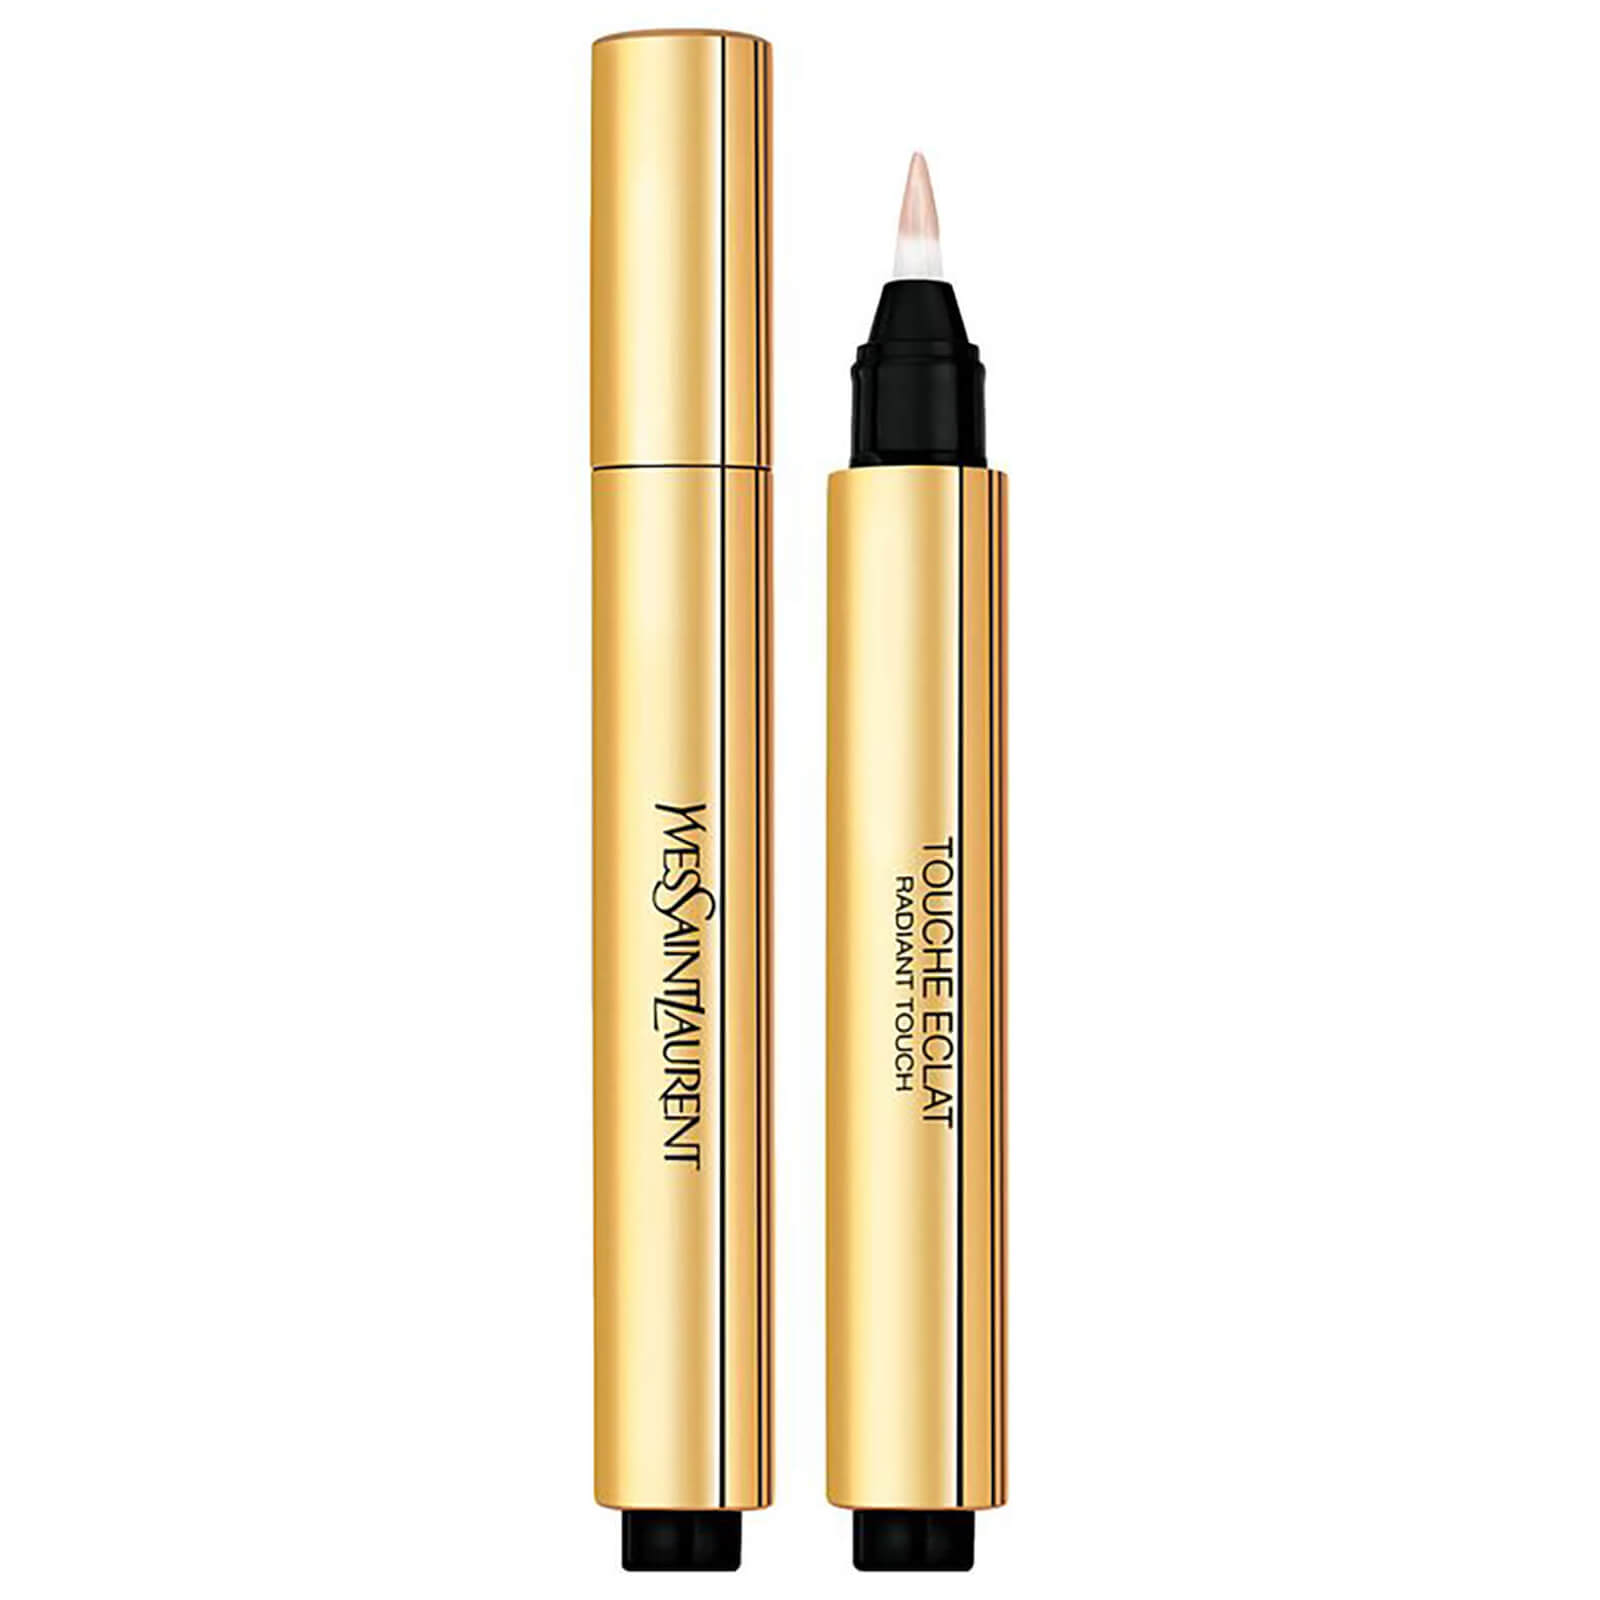 YSL TOUCHE ÉCLAT CONCEALER/HIGHLIGHTER